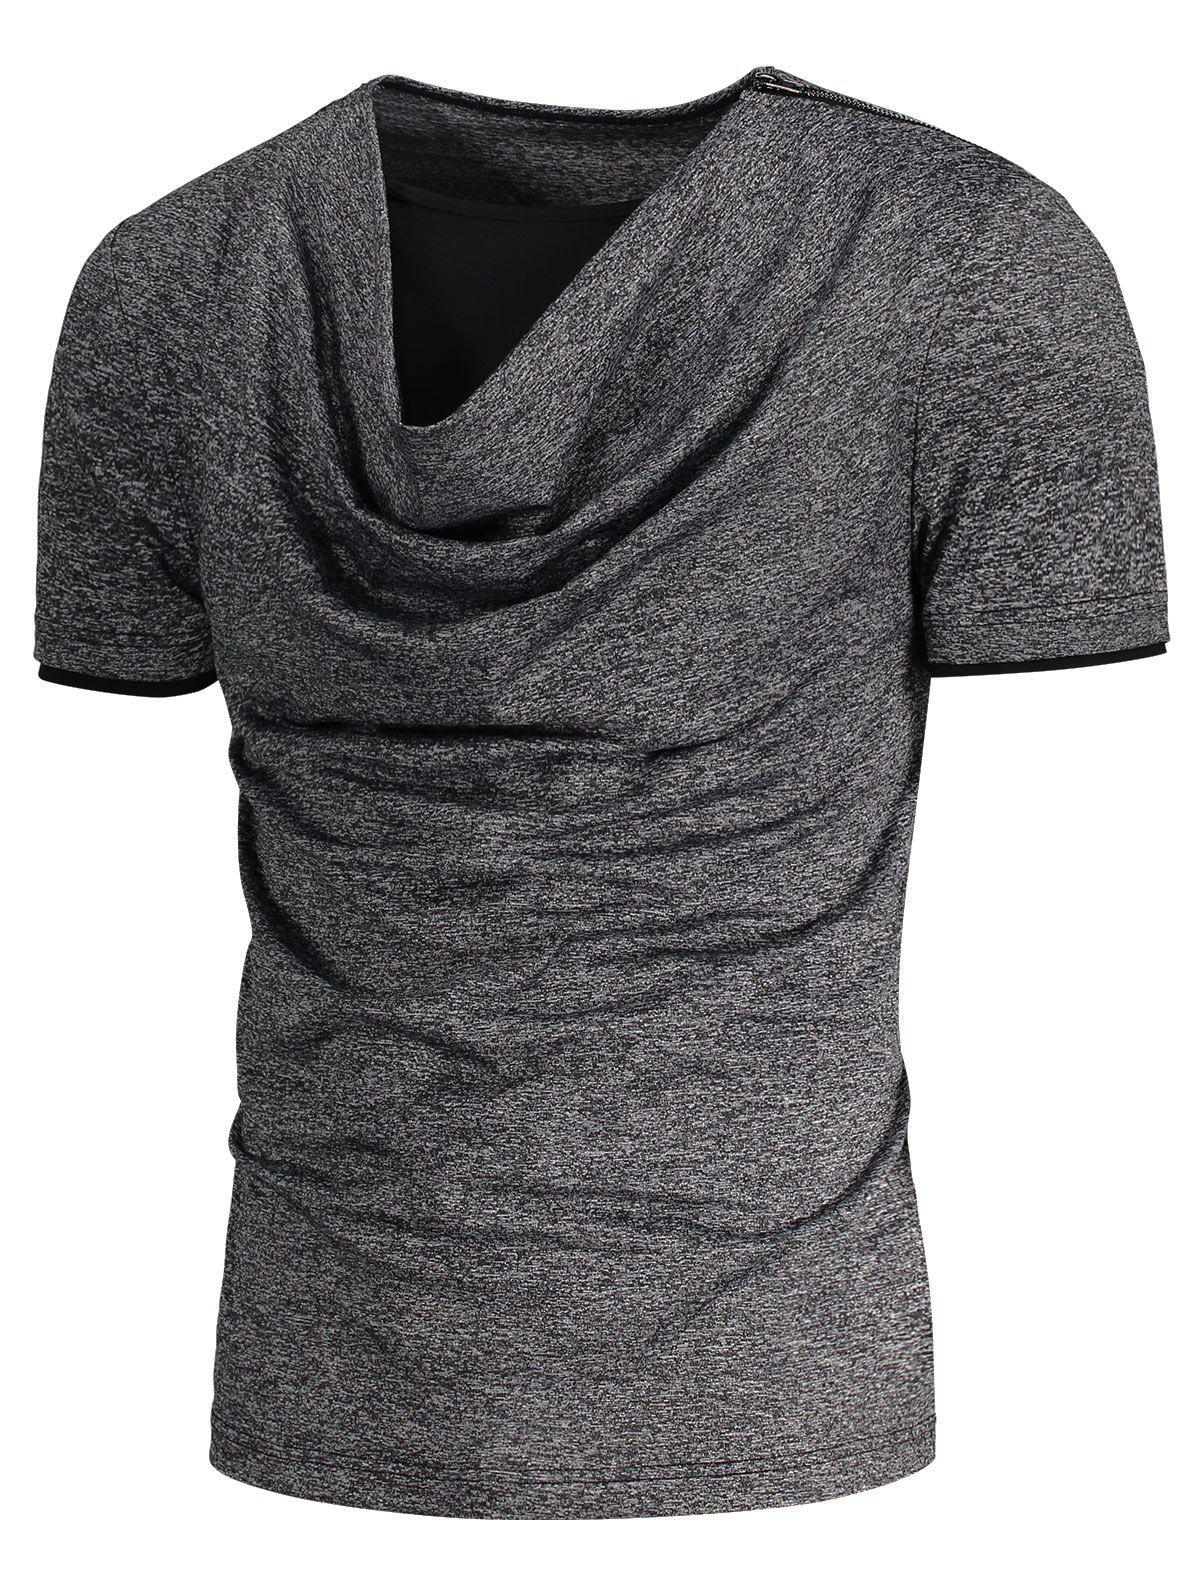 Heaps Collar Shoulder Zip Up Design T-shirt - GRAY XL